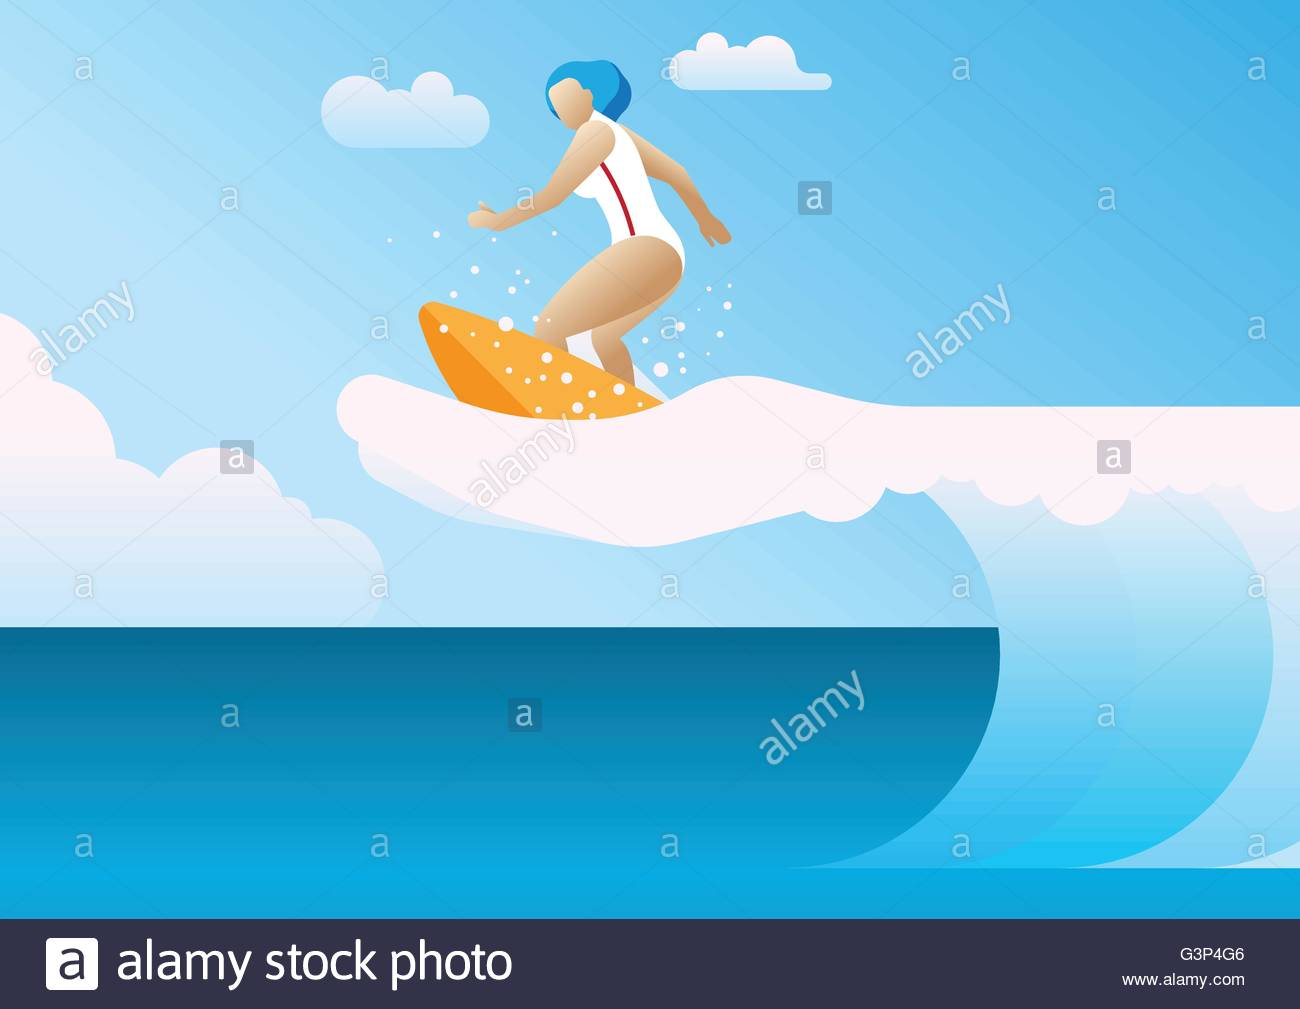 Woman surfing the waves a hand - Stock Vector